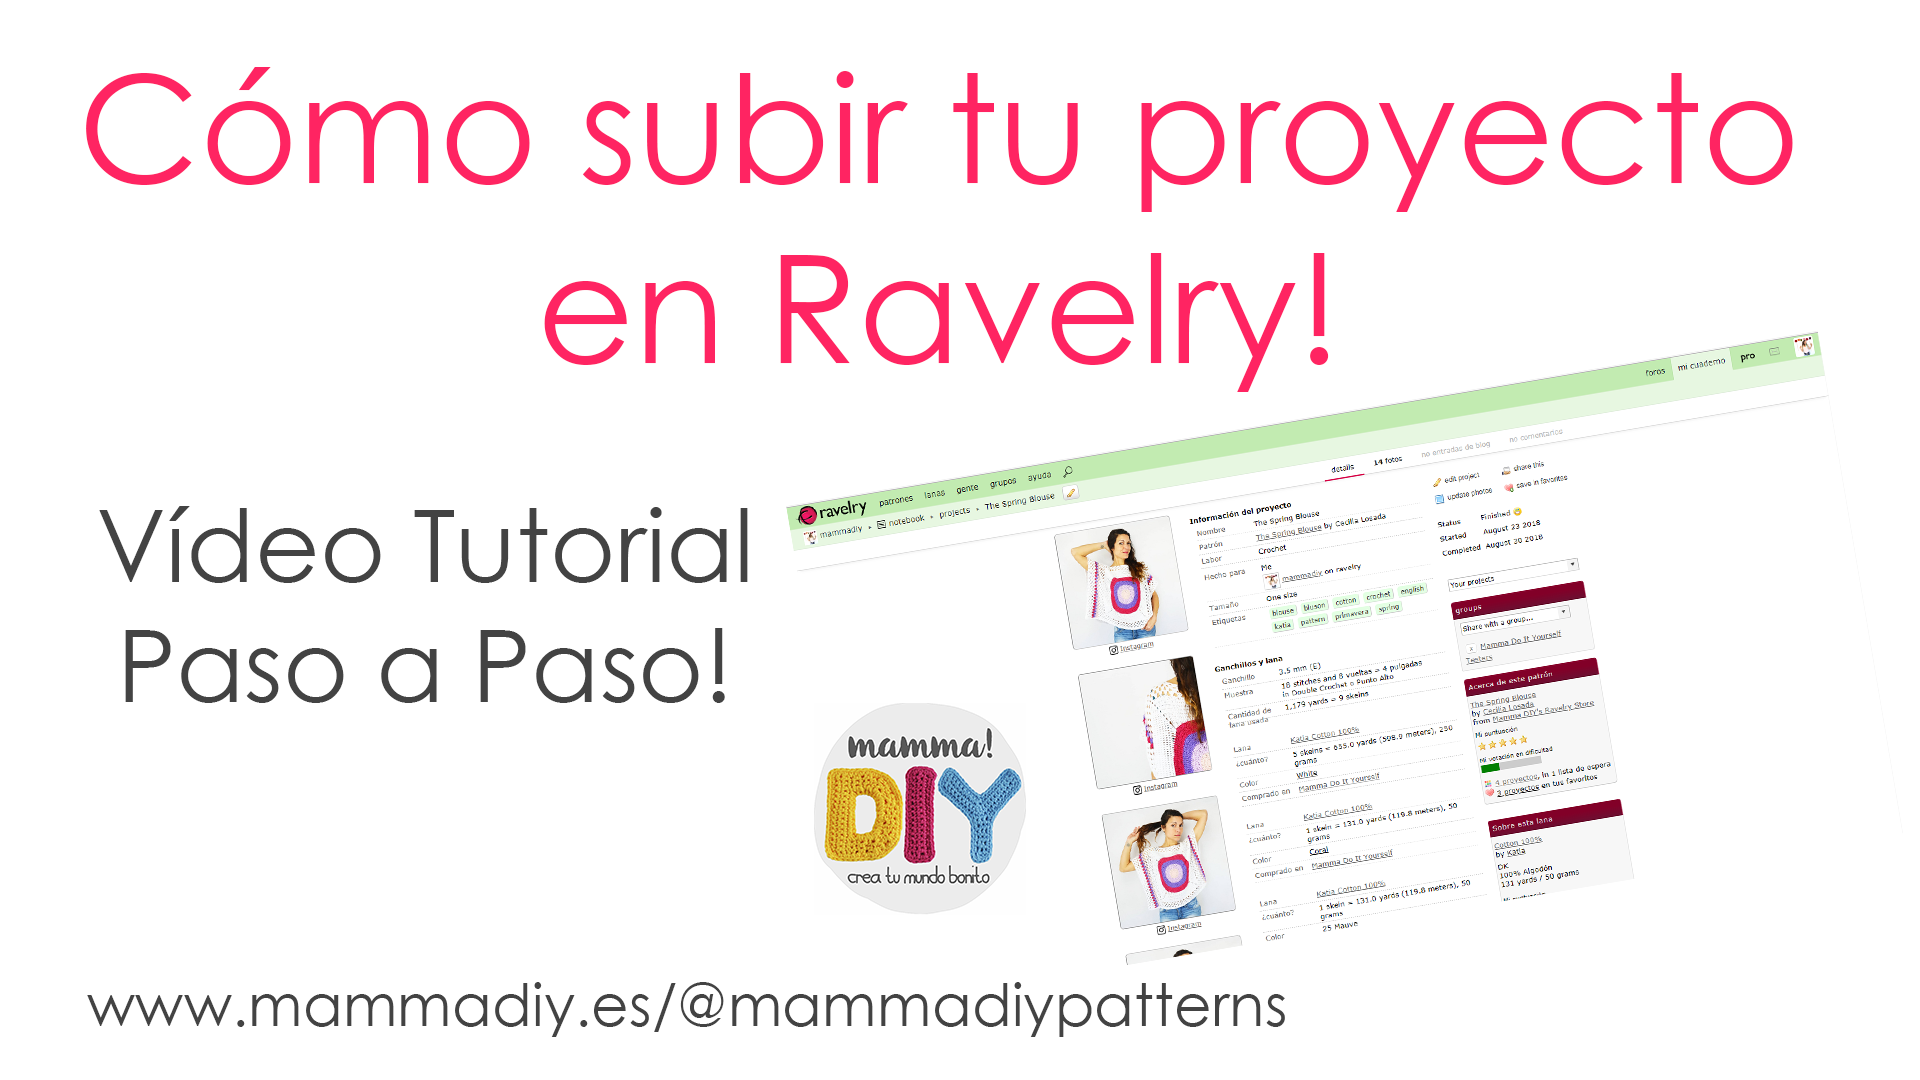 Como subir un proyecto a Ravelry - Mamma! Do It Yourself